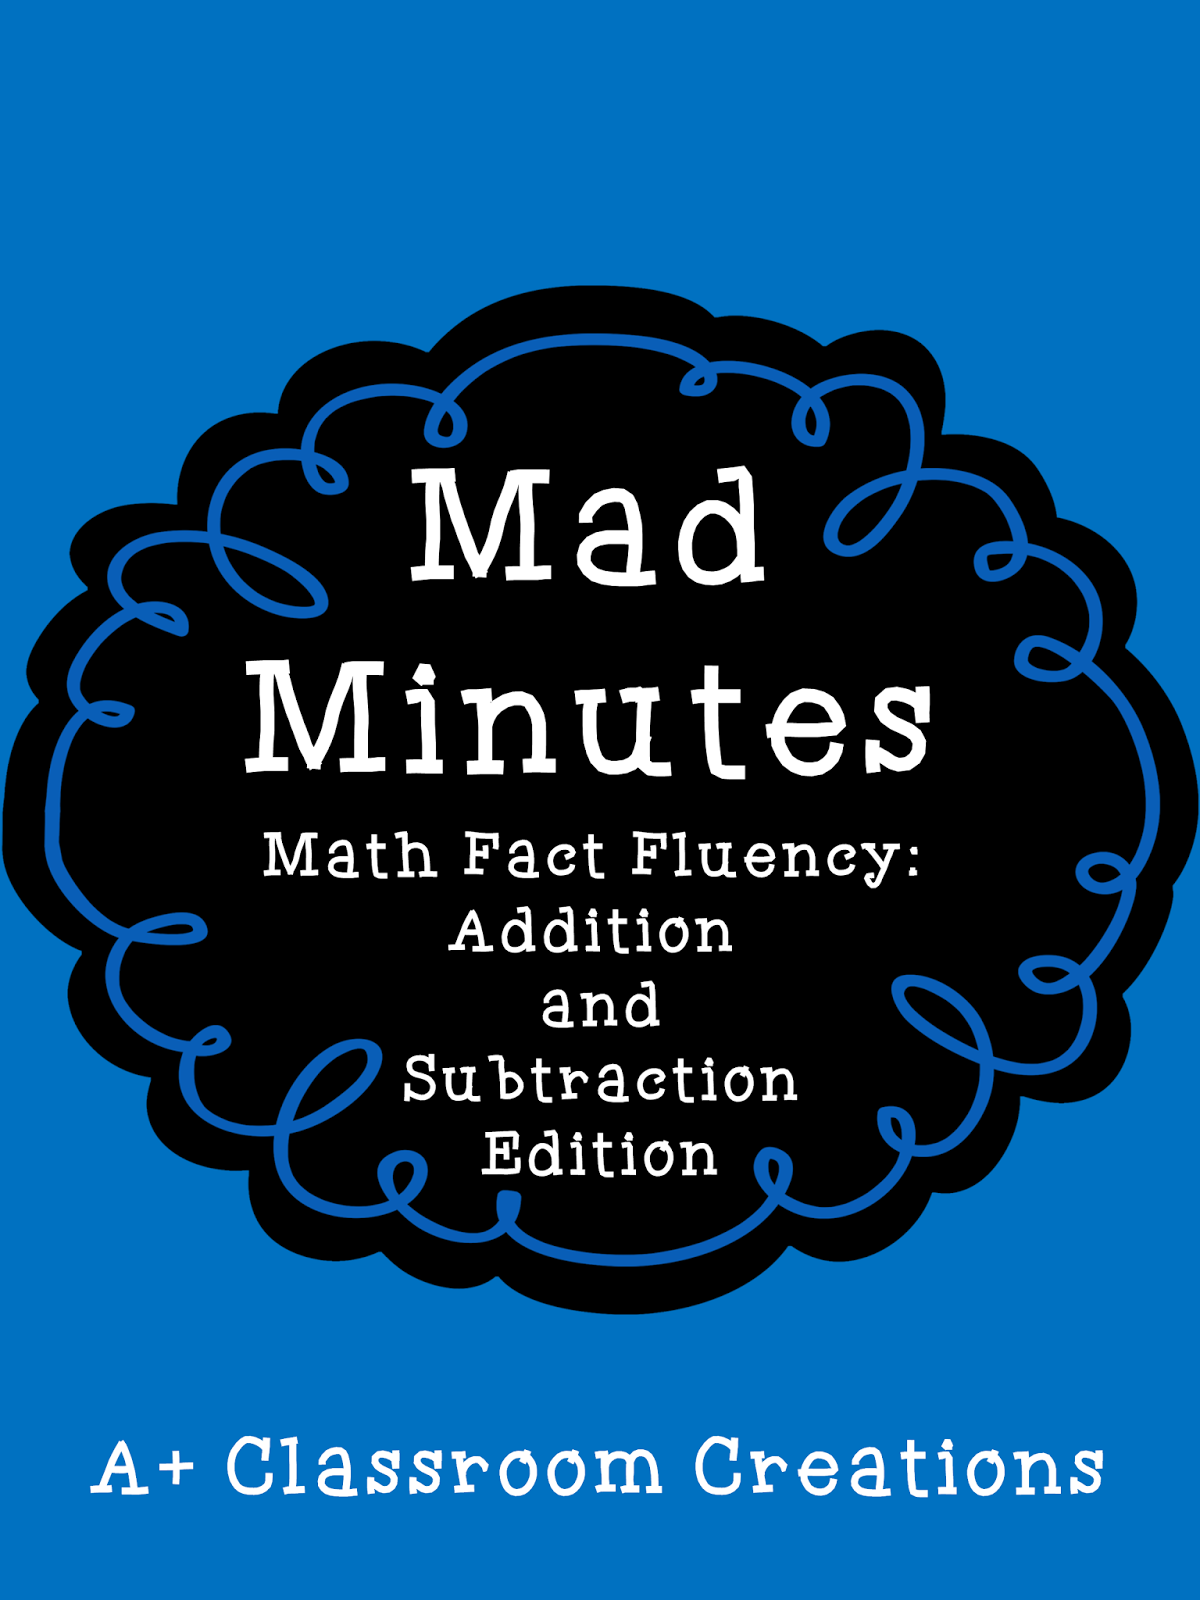 https://www.teacherspayteachers.com/Product/Mad-Minutes-Math-Fact-Fluency-Addition-and-Subtraction-Common-Core-Aligned-1031637